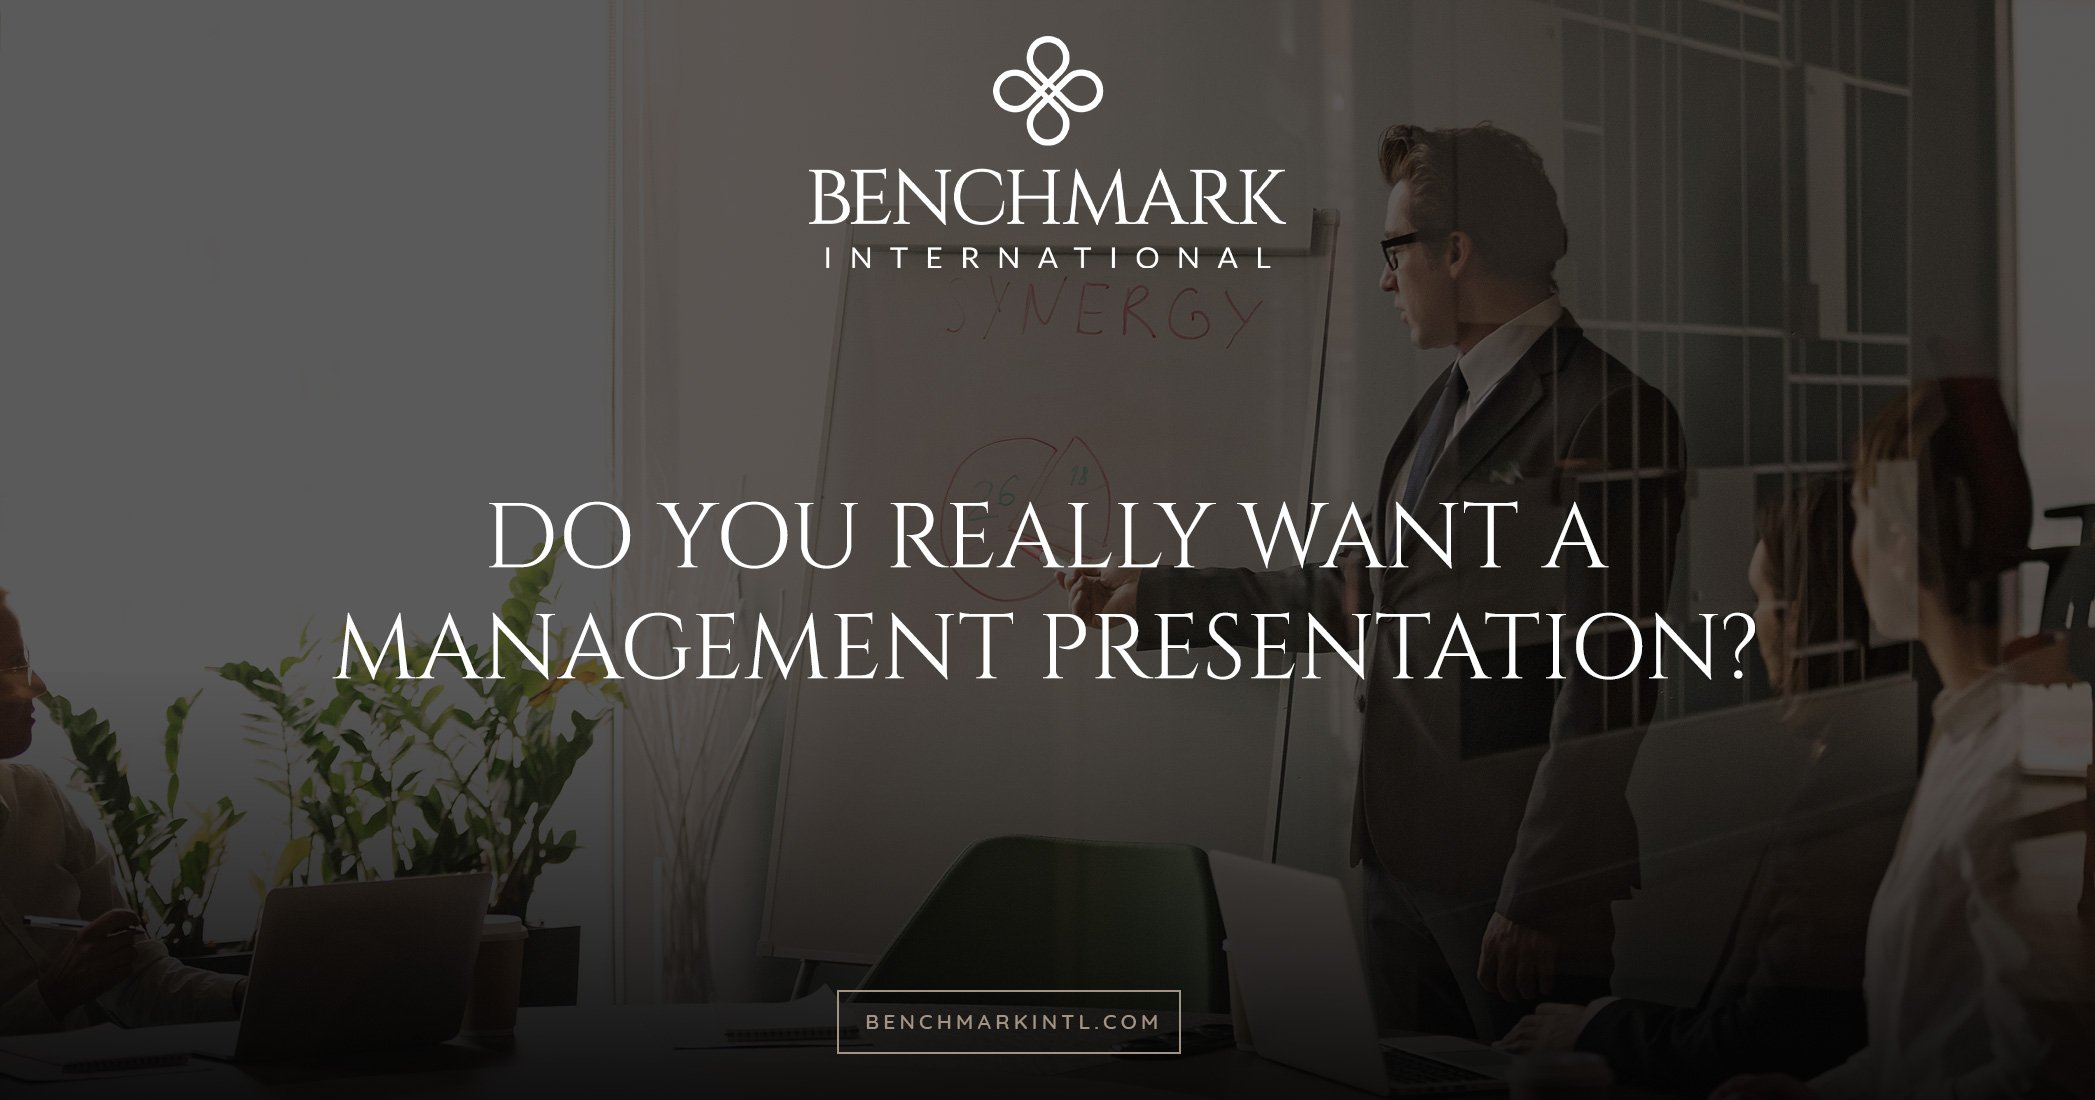 Do You Really Want a Management Presentation?